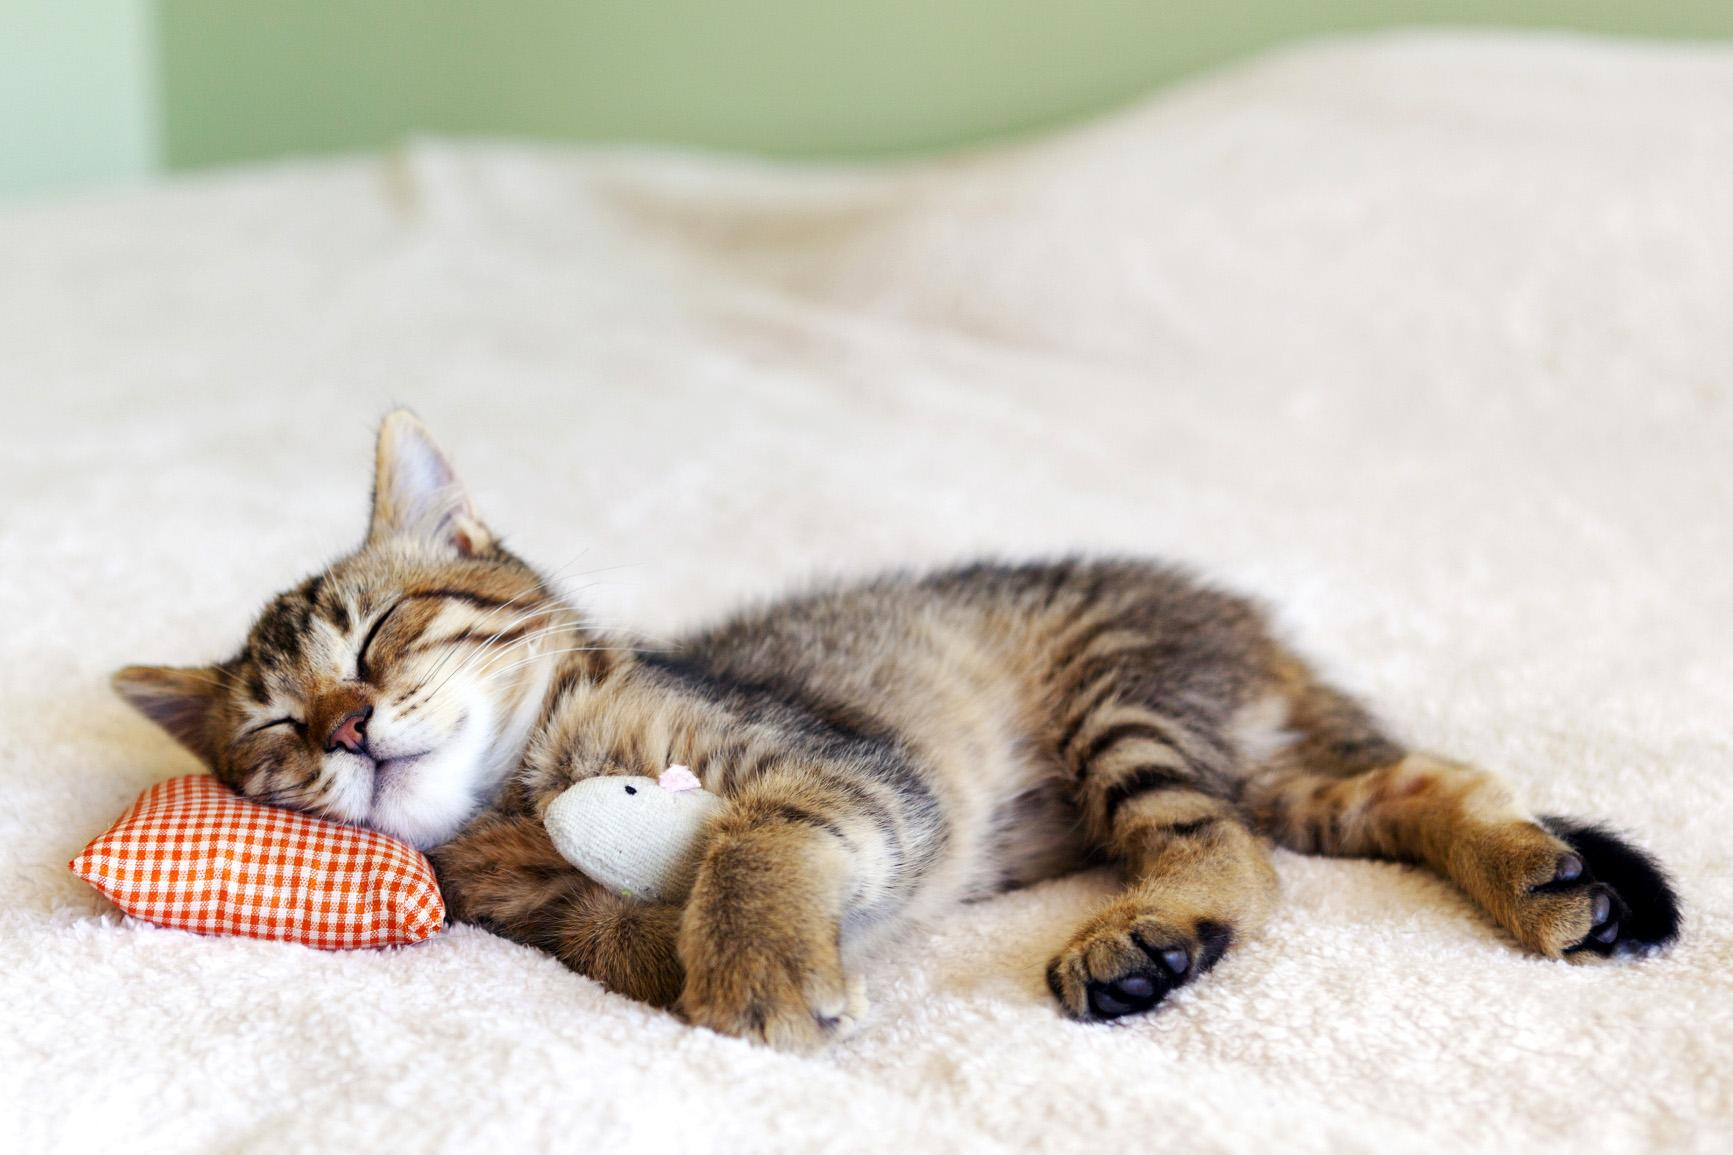 cute cat sleeping photo